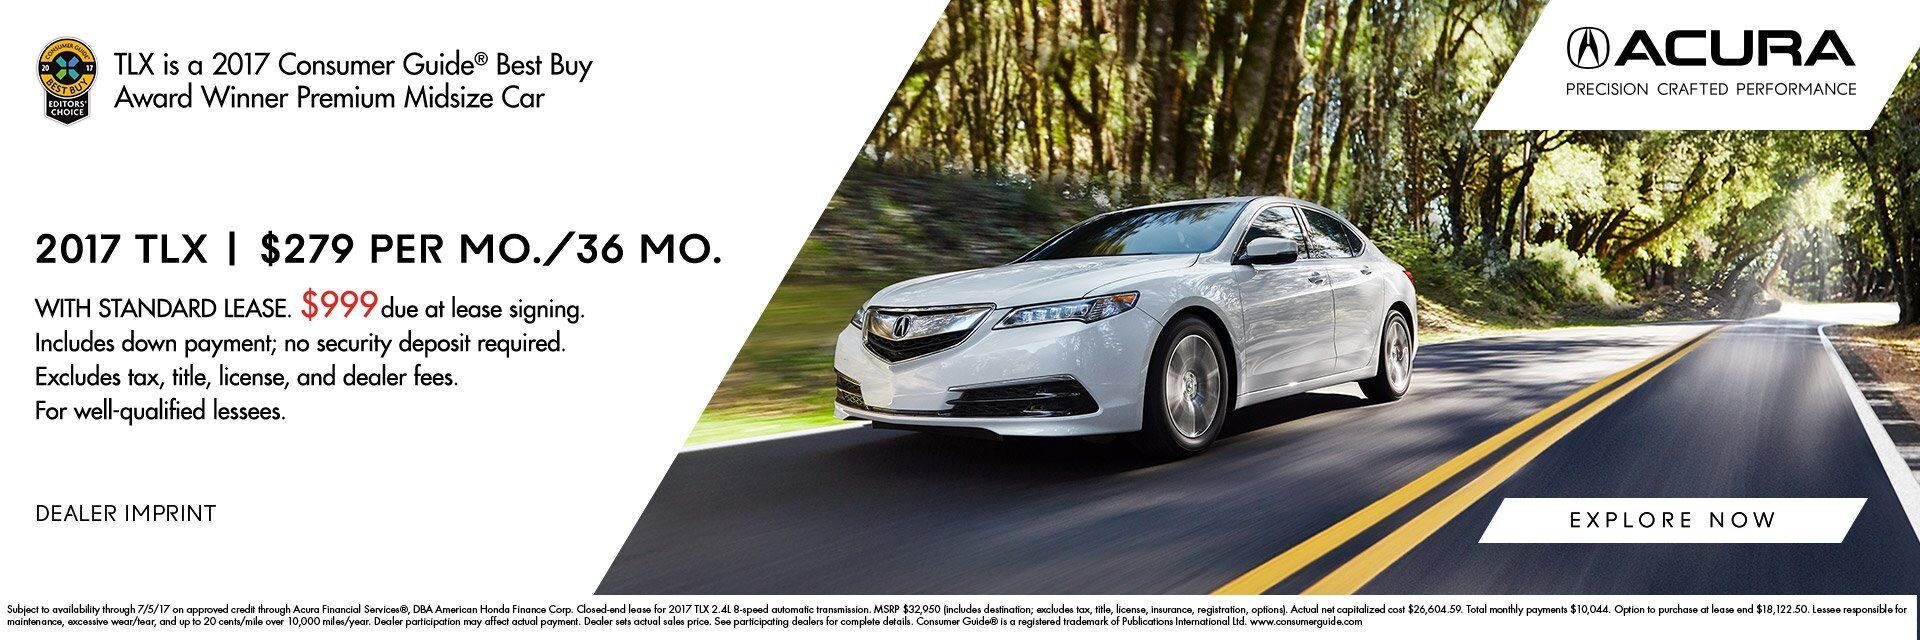 2017 TLX $279 Lease